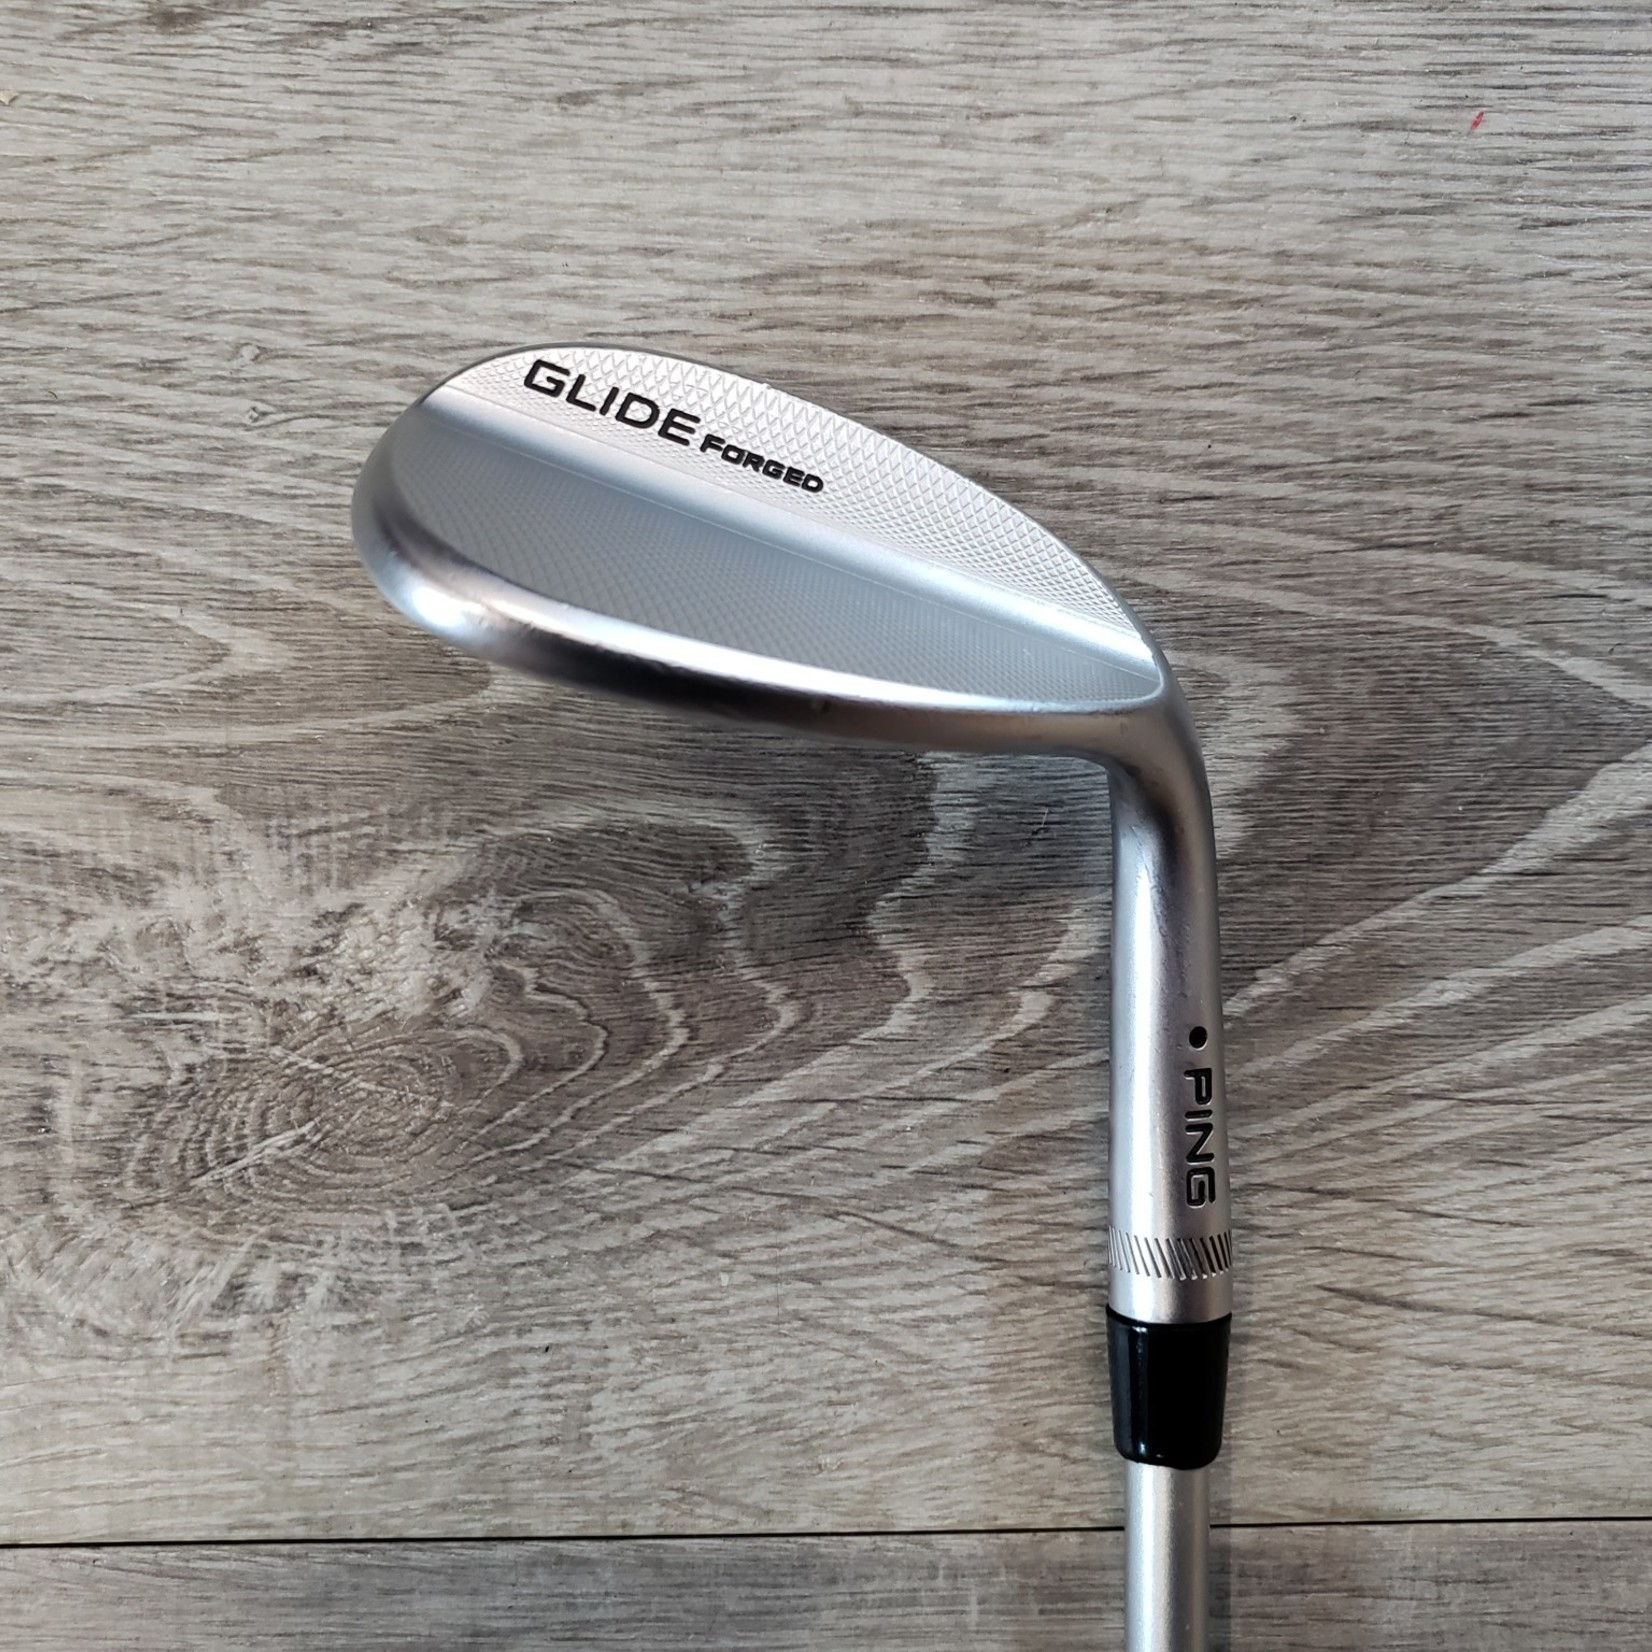 PING Ping Glide Forged 58* 8 Graphite Stiff Wedge (RH)